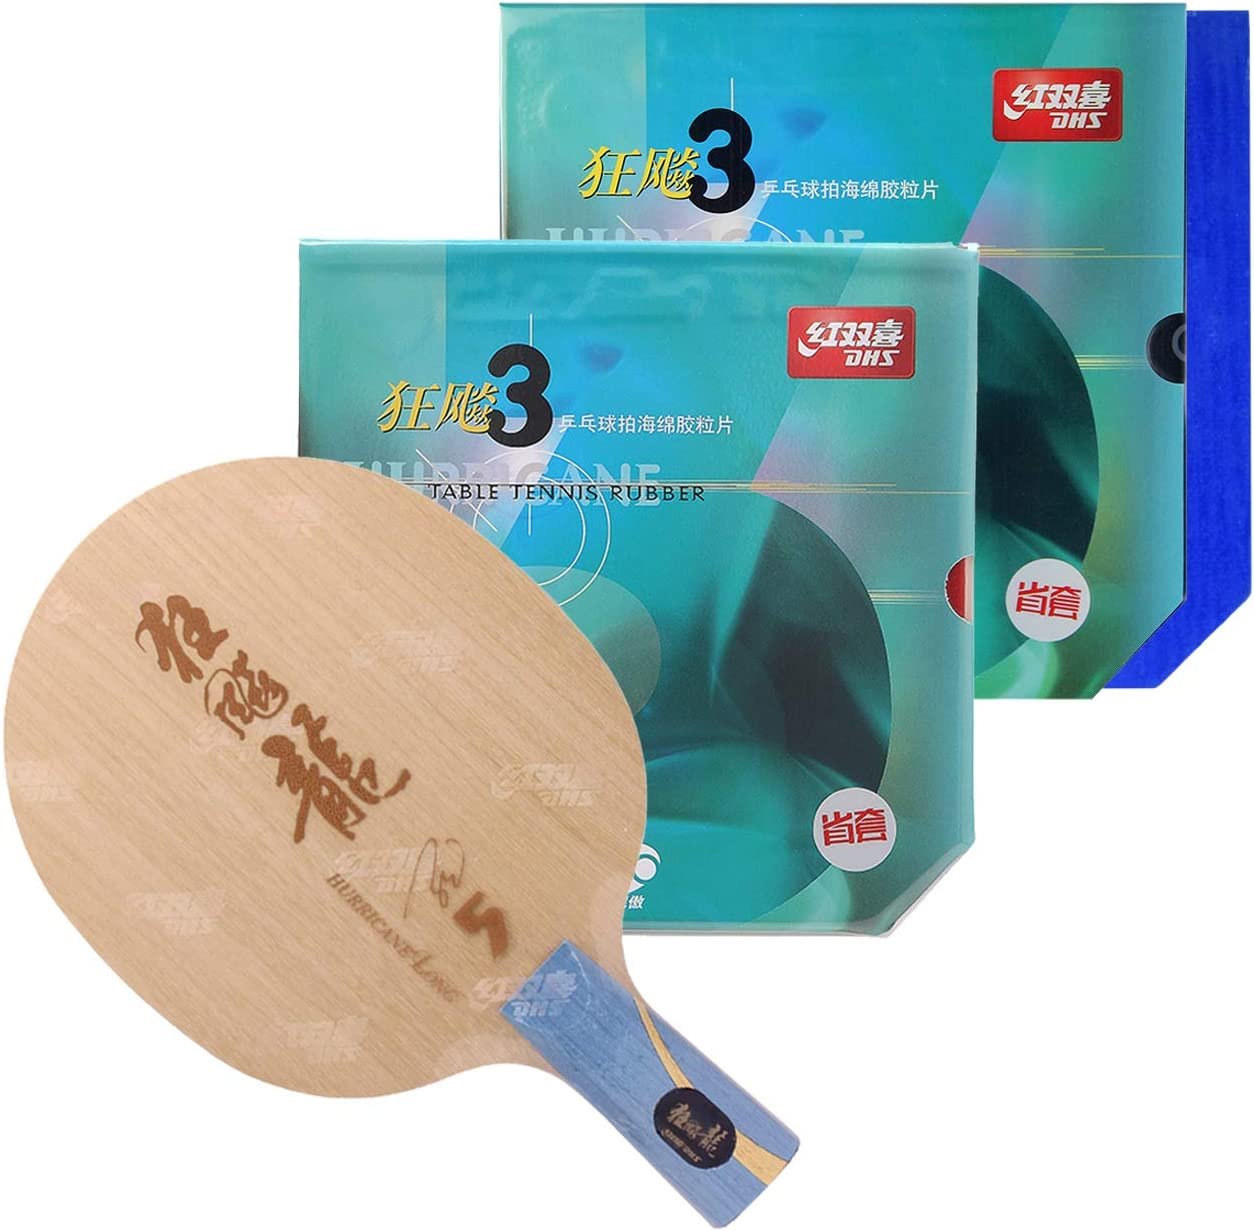 DHS Hurricane Long 5 Racket | CS Blade | with Ma Long Autograph Card | NEO Hurricane 3 Provincial Table Tennis Rubber | Blue and Orange Sponge | Professional Assembled